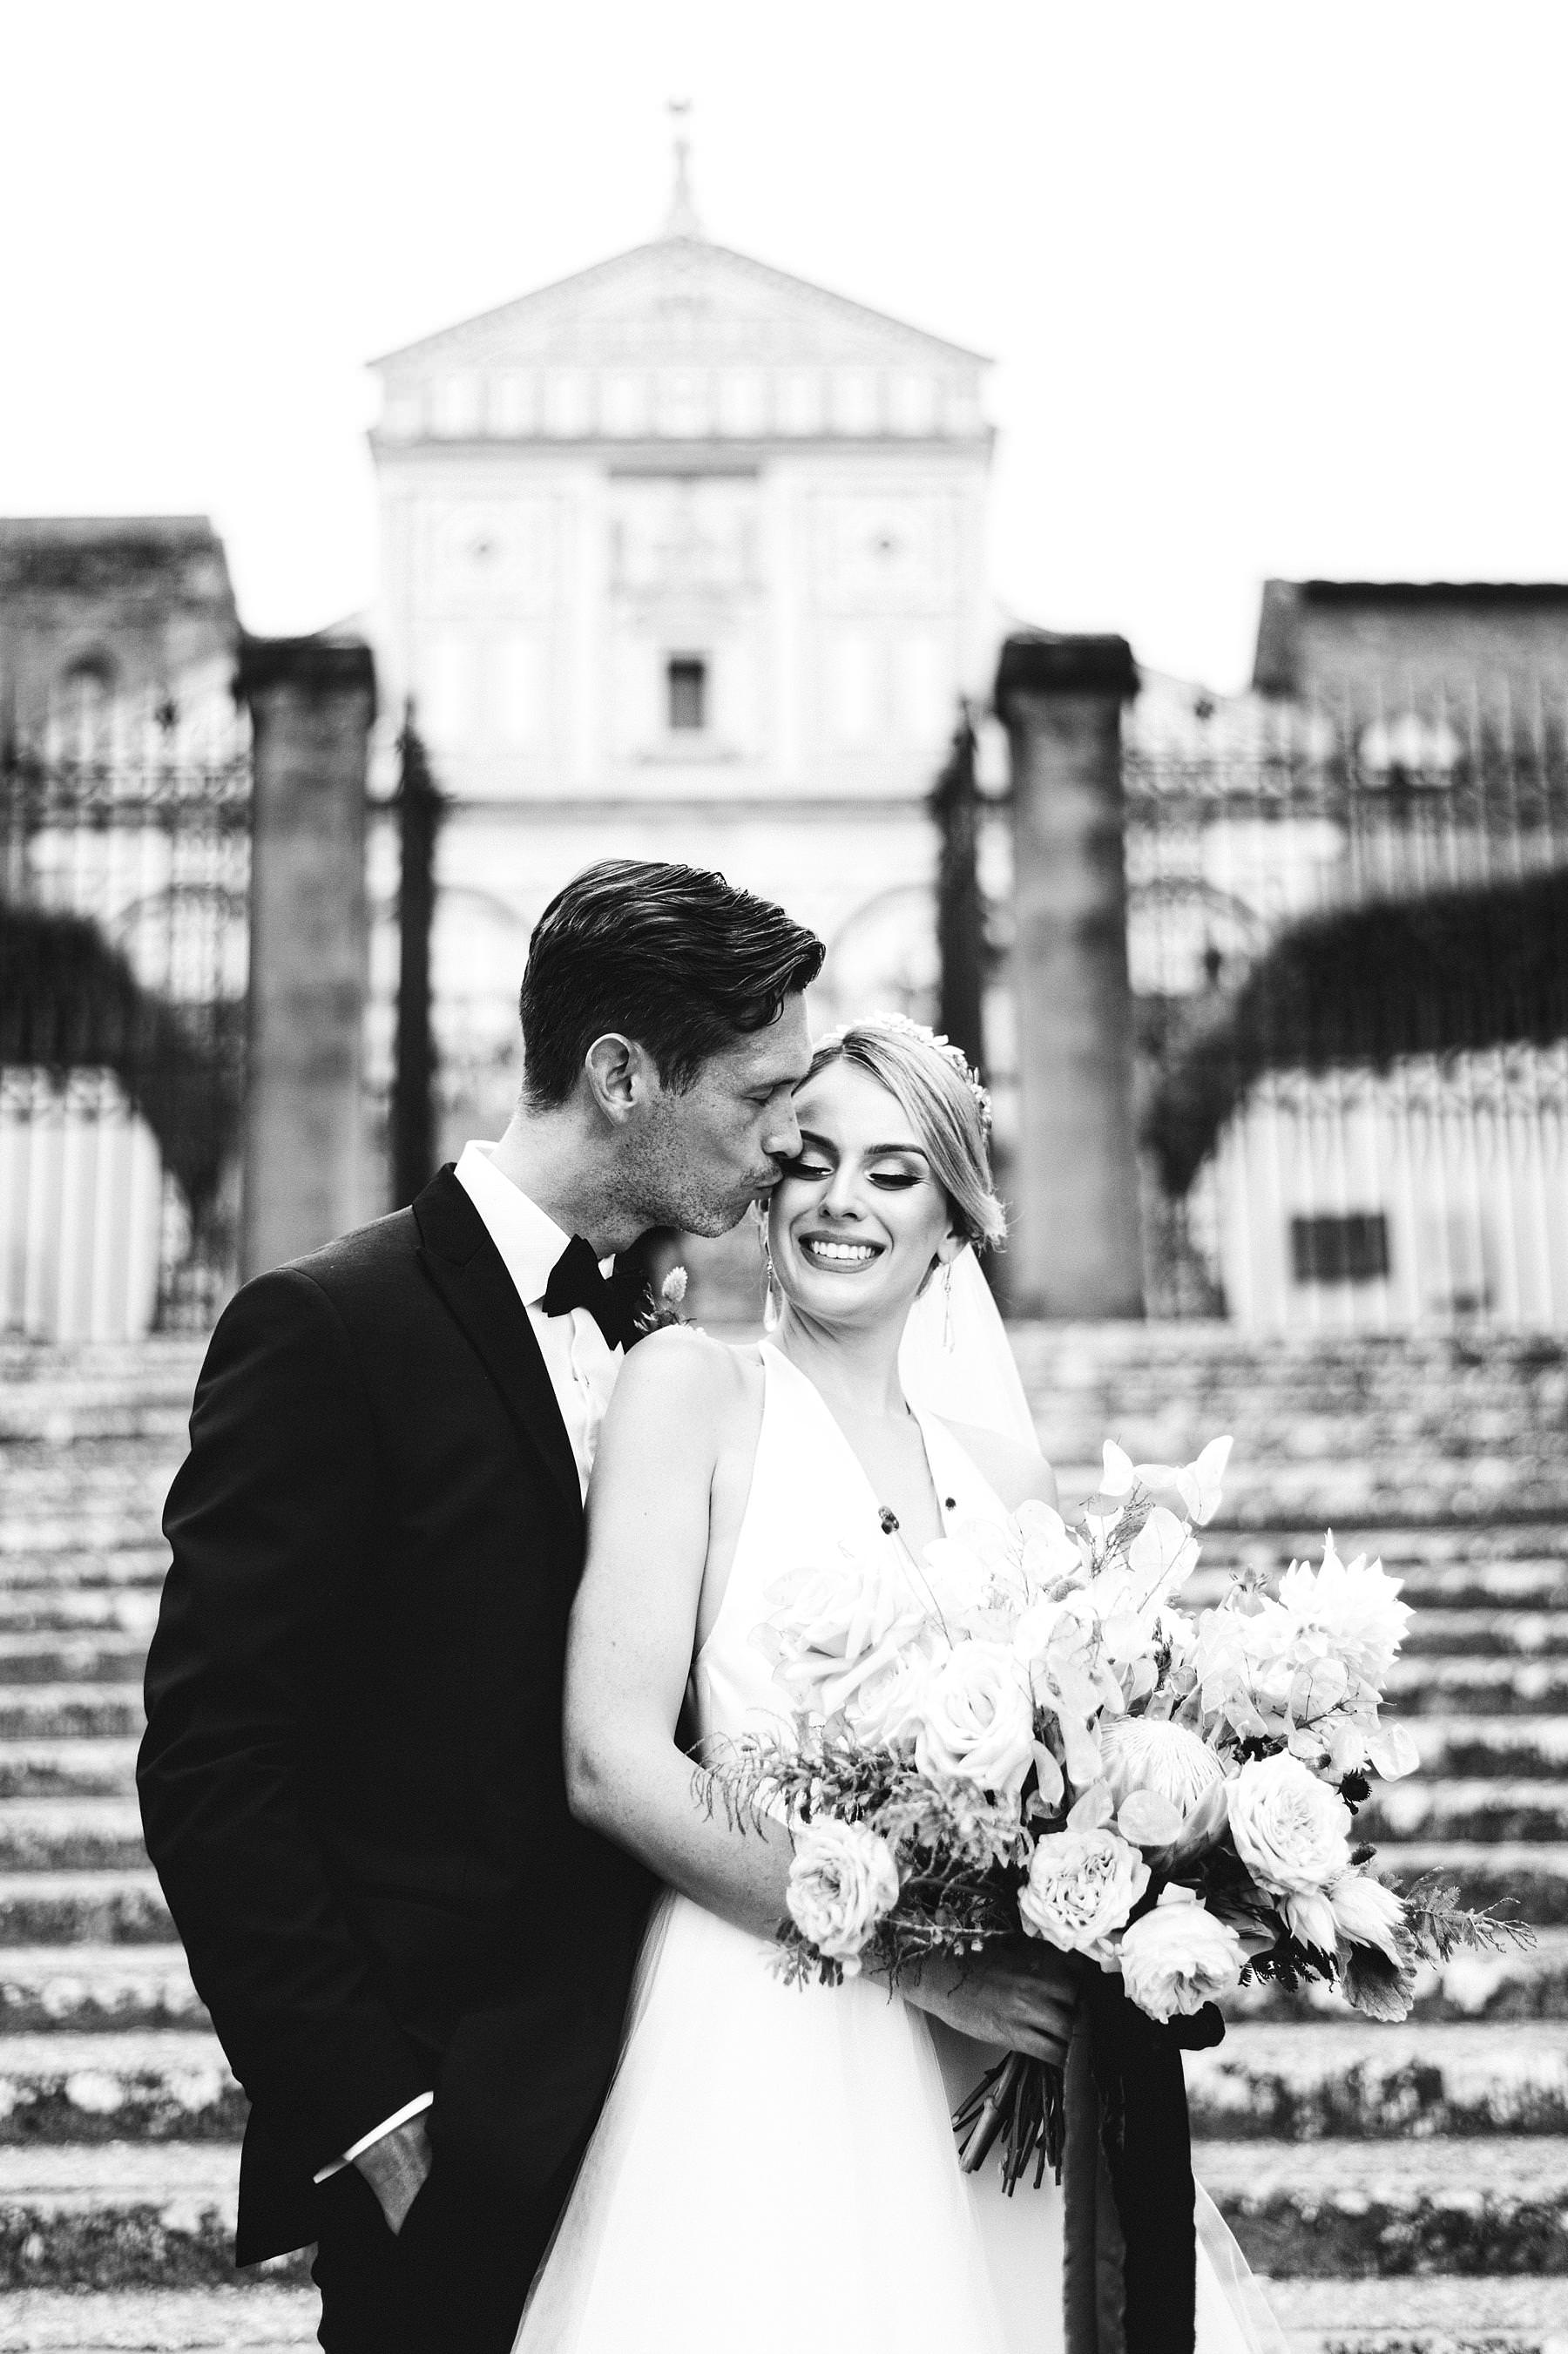 Christina and Cheyne got married at Villa La Vedetta, an incredible venue where to hold a stunning luxury wedding in Florence